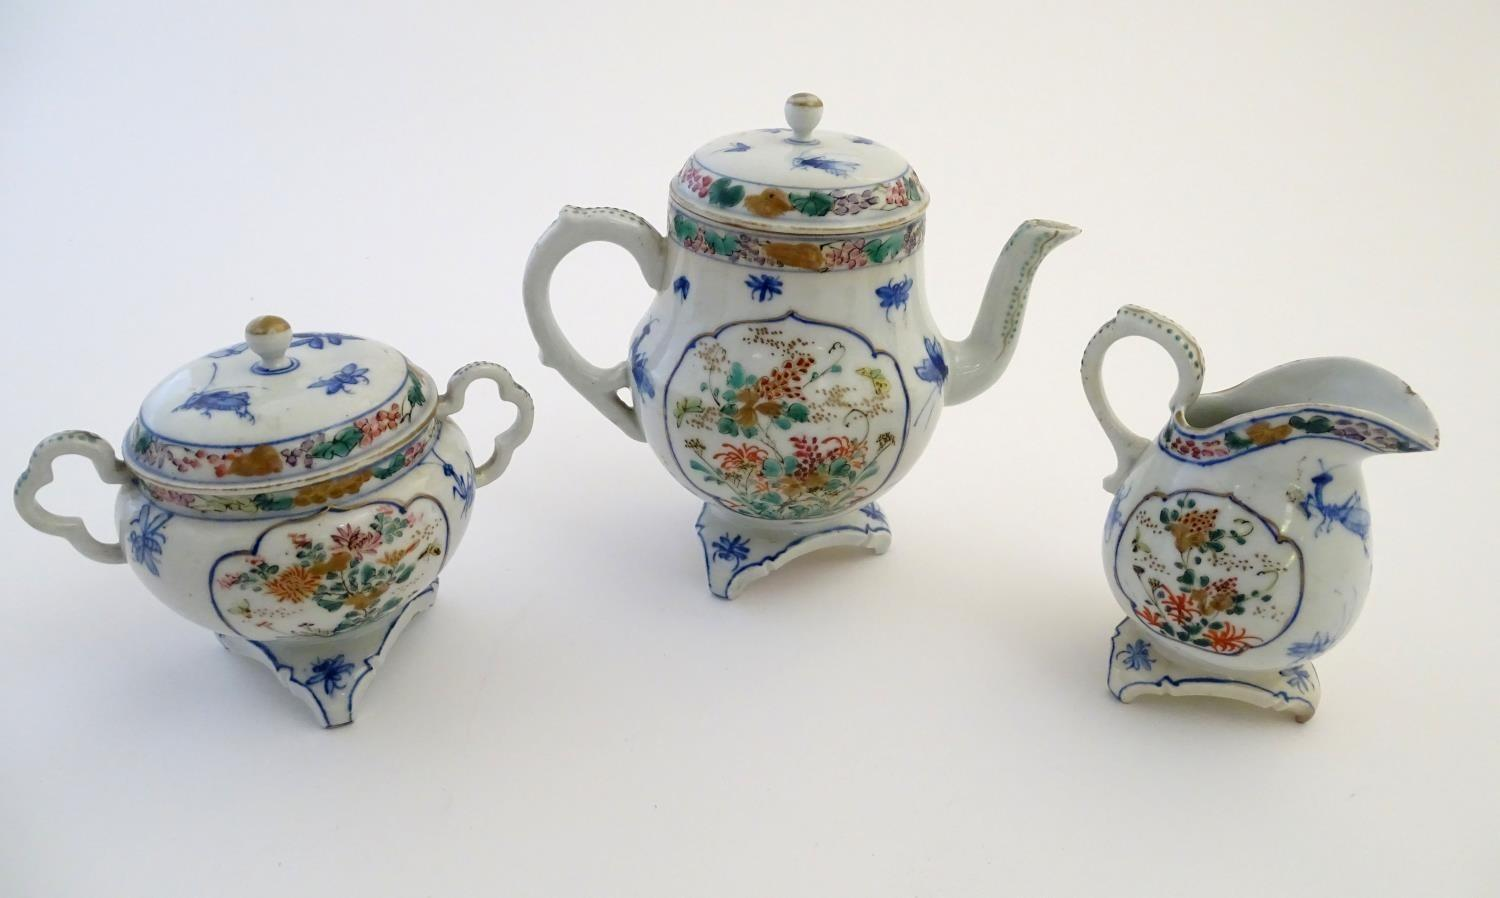 A Japanese teapot, twin handled sugar bowl and milk jug decorated with hand painted insects and - Image 8 of 8